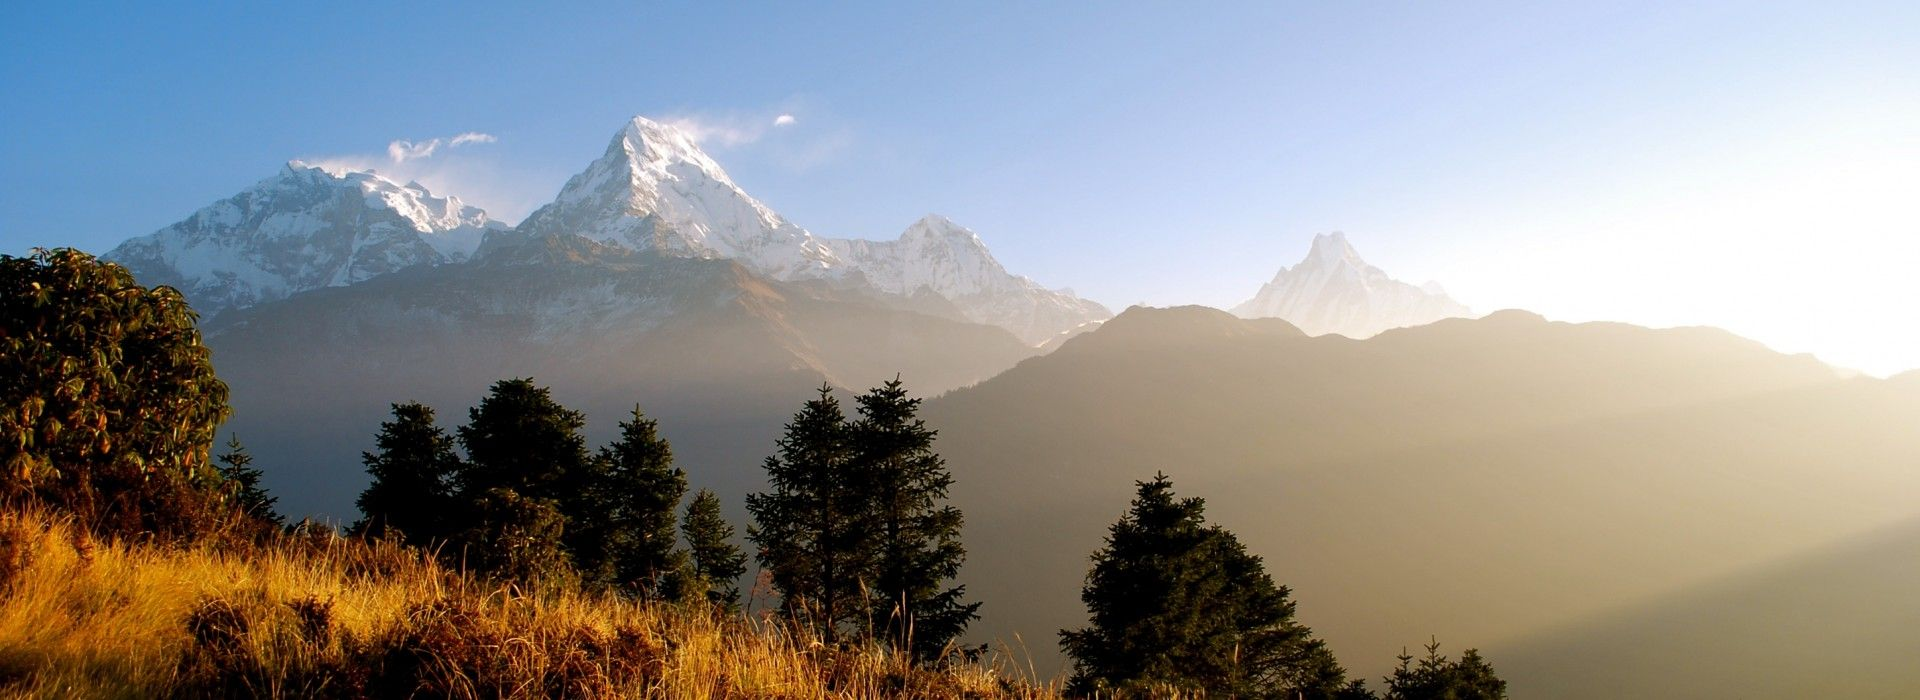 Expedition tours in Asia